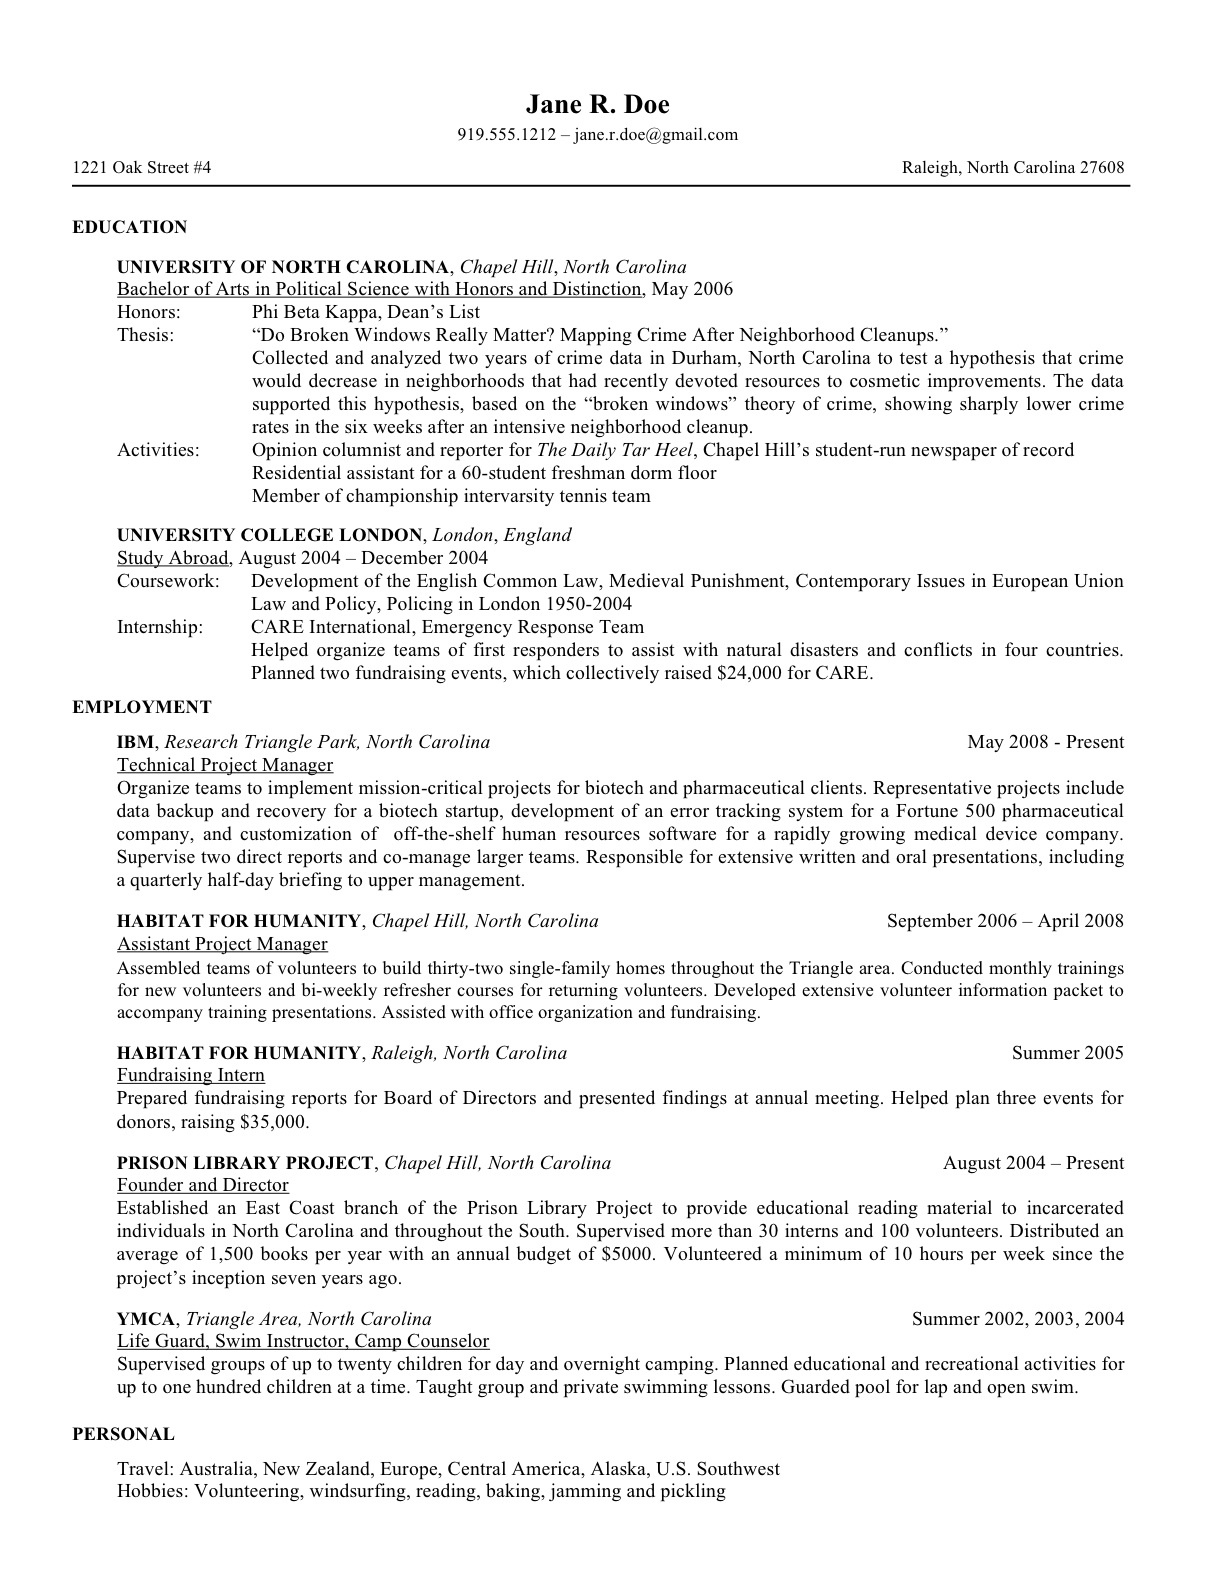 law school resume templates prepping your for of university at sample summer job Resume Sample Resume For Summer Job Applicants